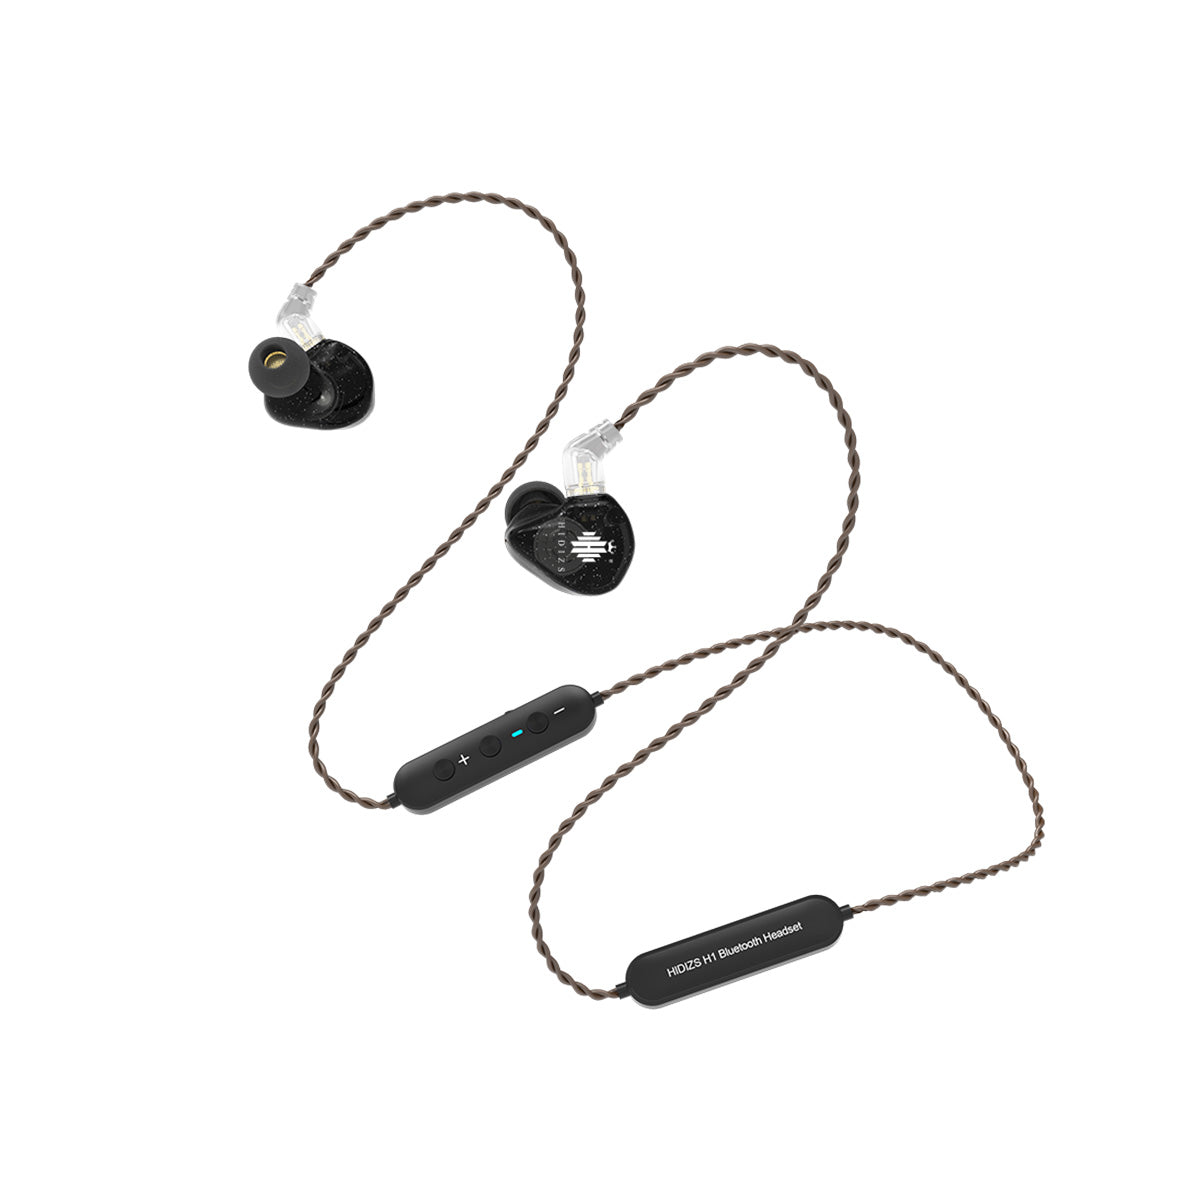 Hidizs H1 Neckband Sports Bluetooth HiFi Earphones